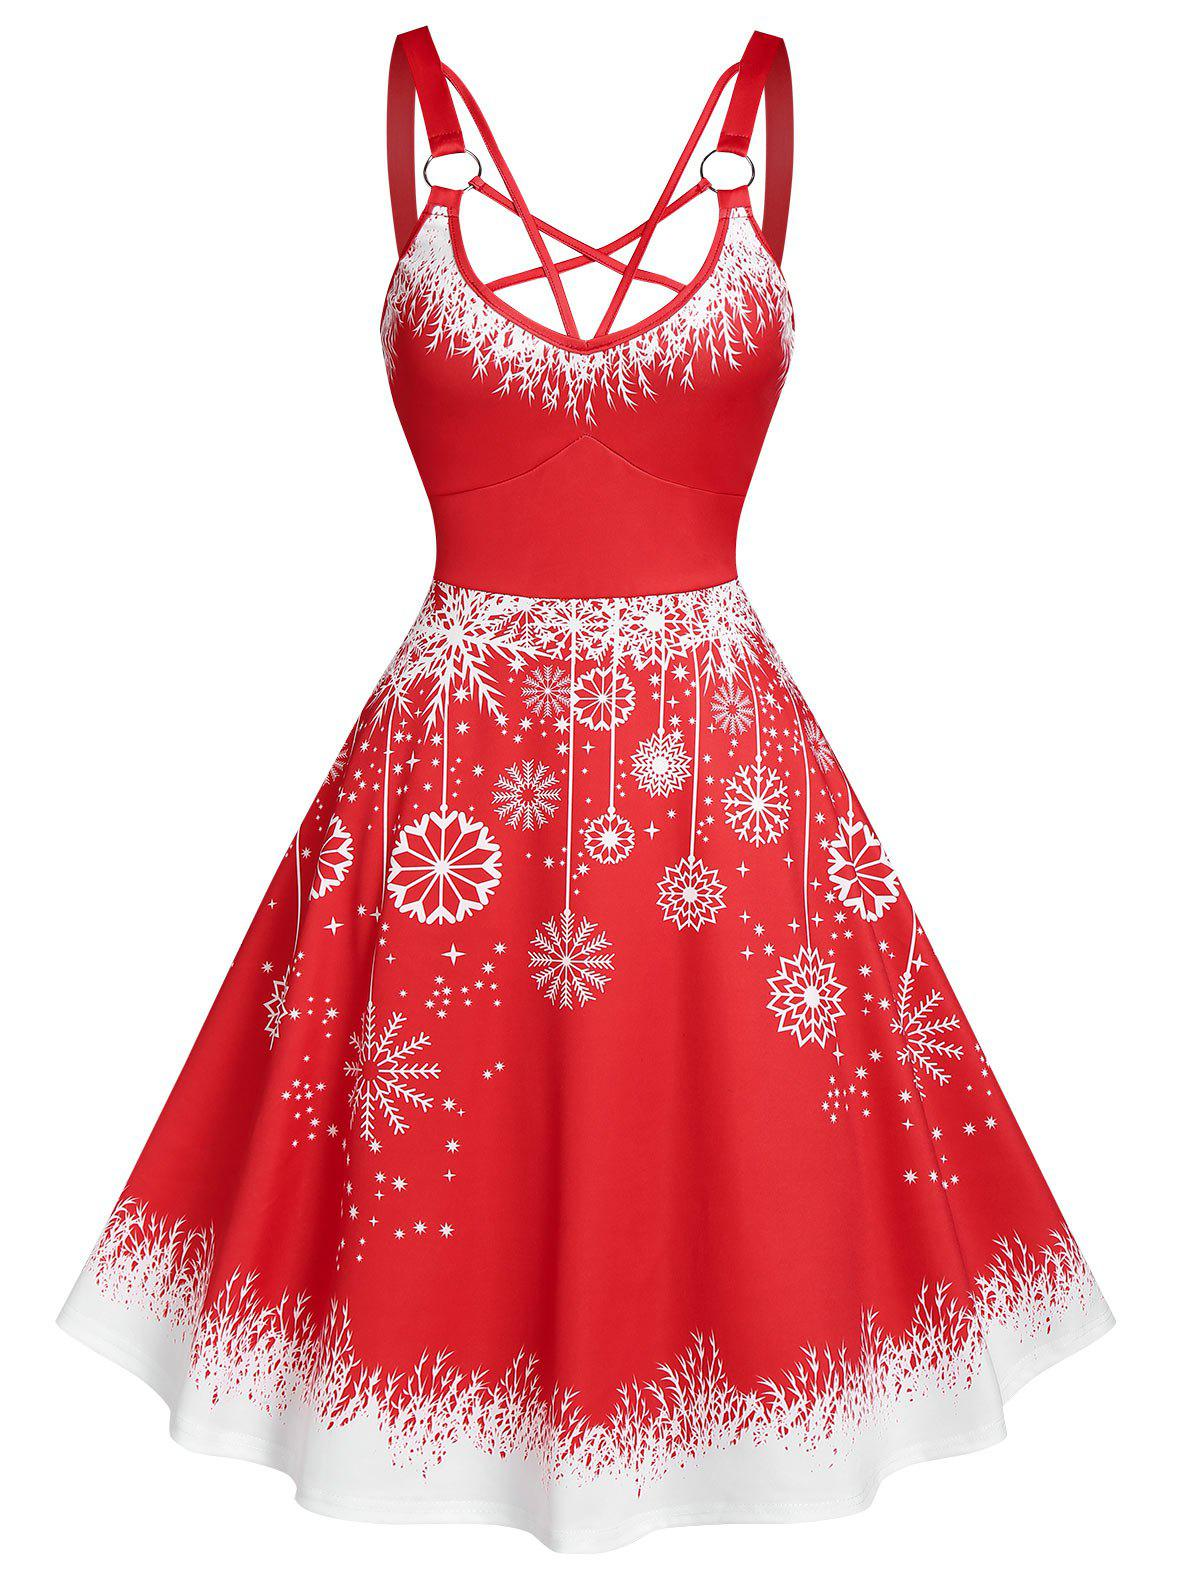 Robe à Bretelle de Noël Flocon de Neige Imprimé - Rouge 2XL